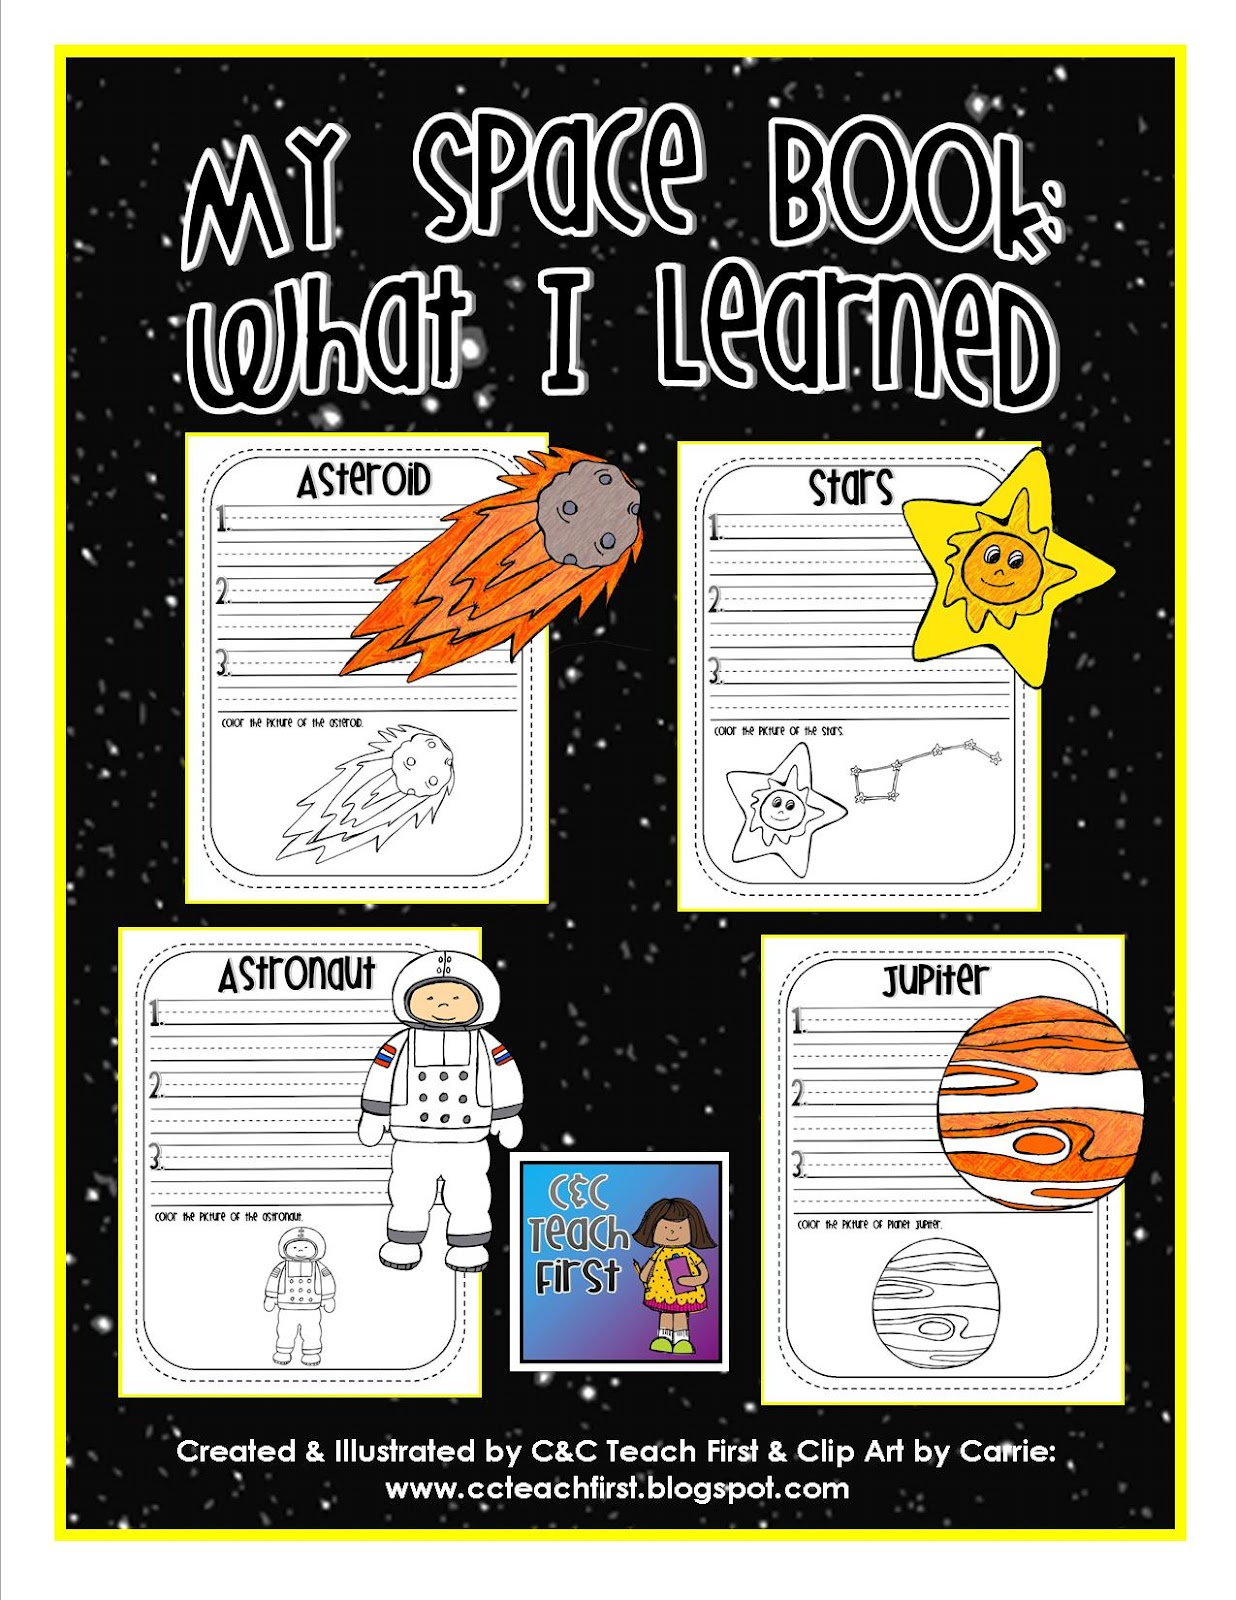 Clip Art By Carrie Teaching First My Space Book What I